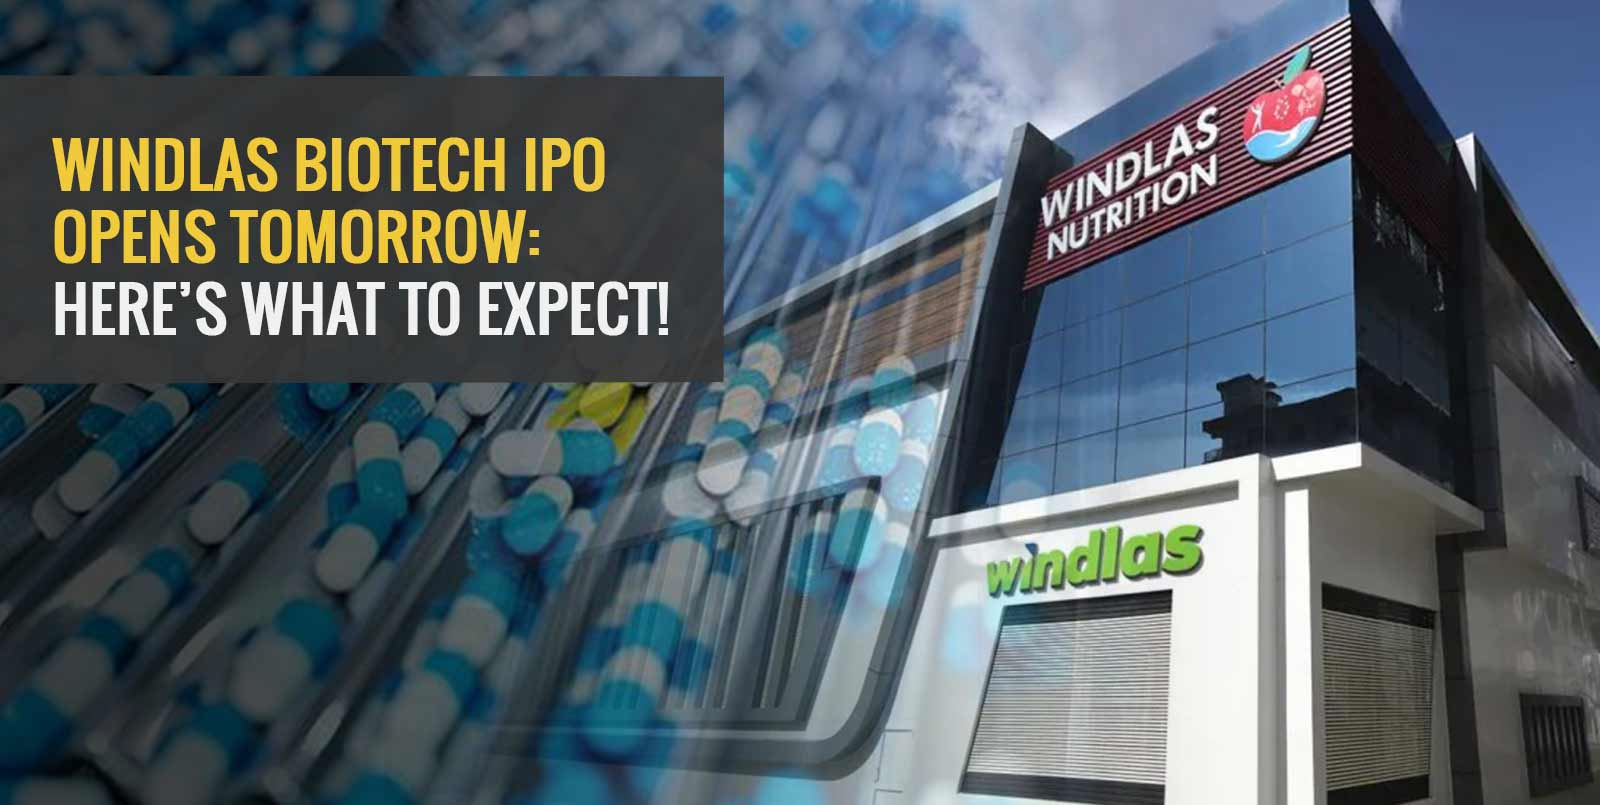 Windlas Biotech IPO Opens Tomorrow: Here's What to Expect!